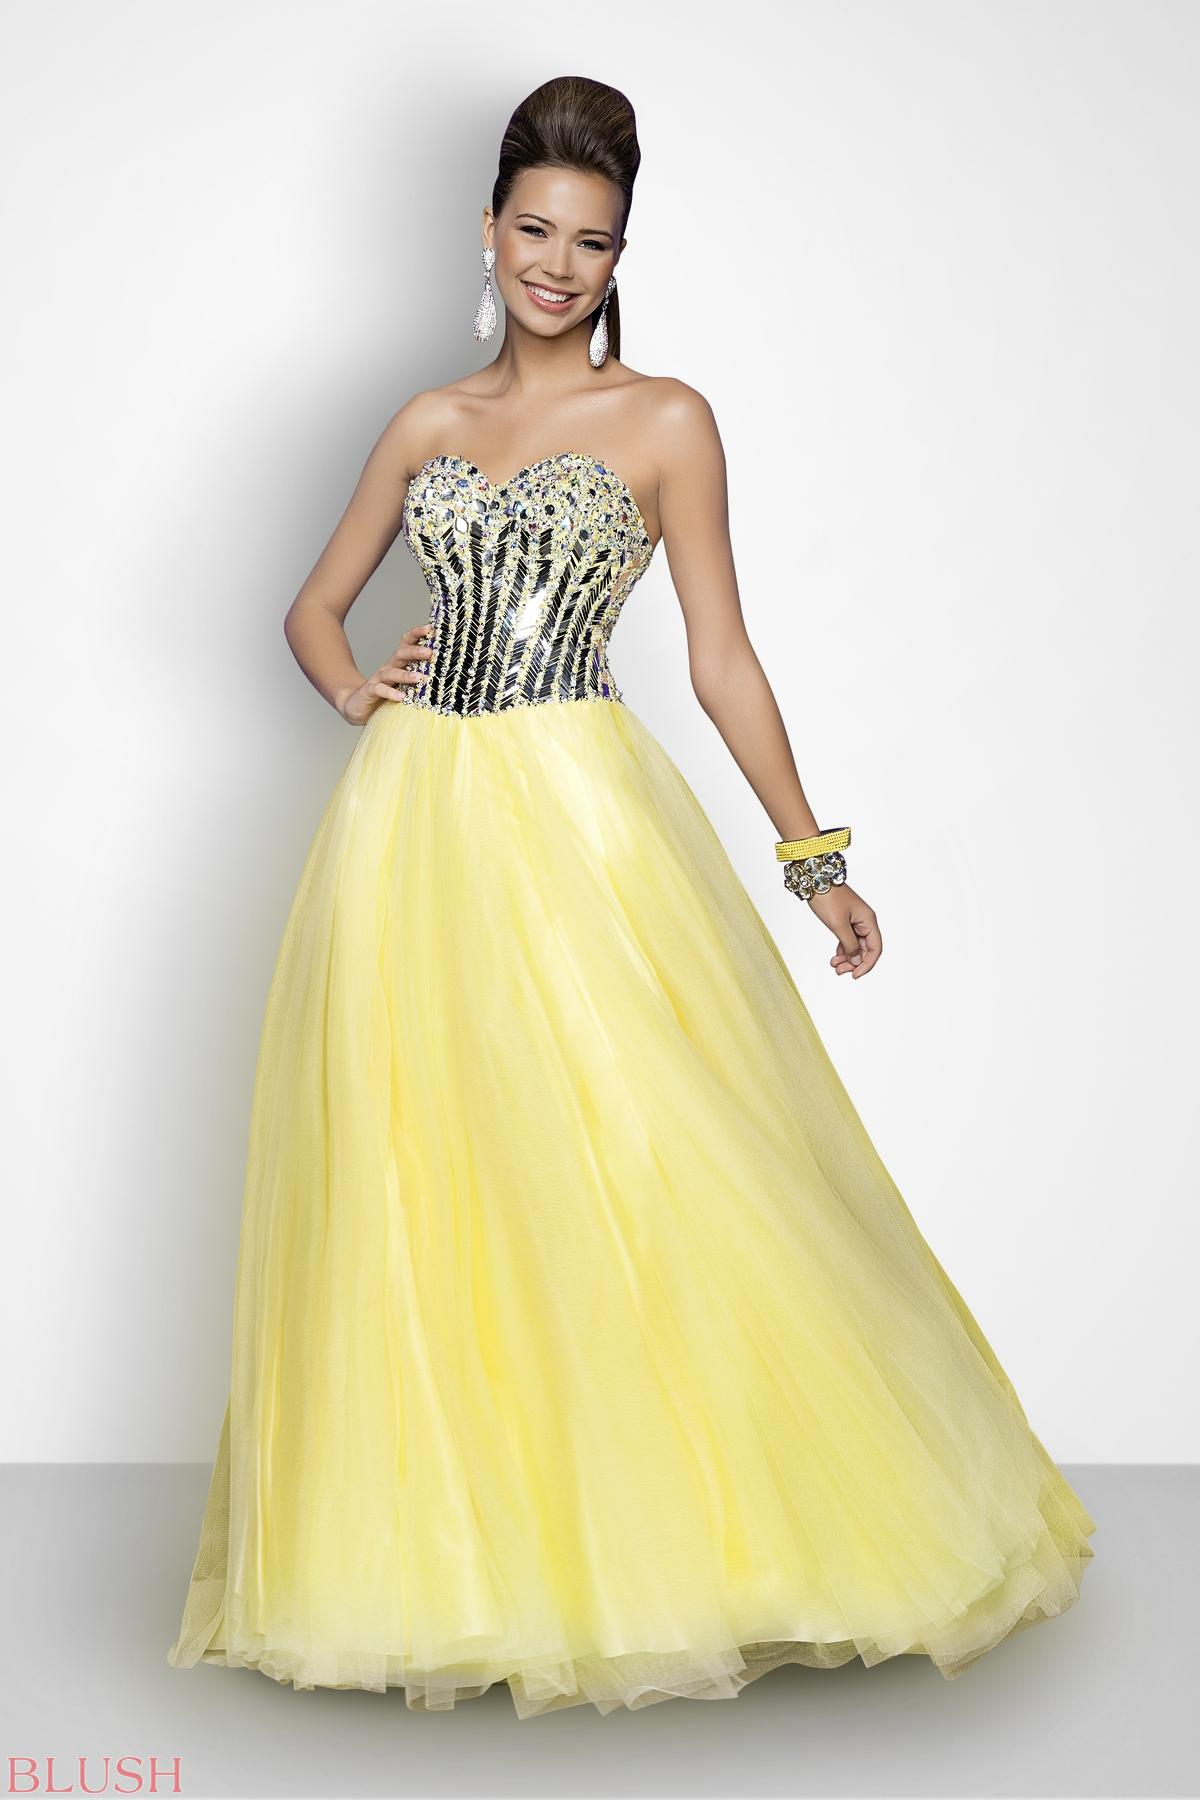 blush prom is providing more of the perfect ball gown